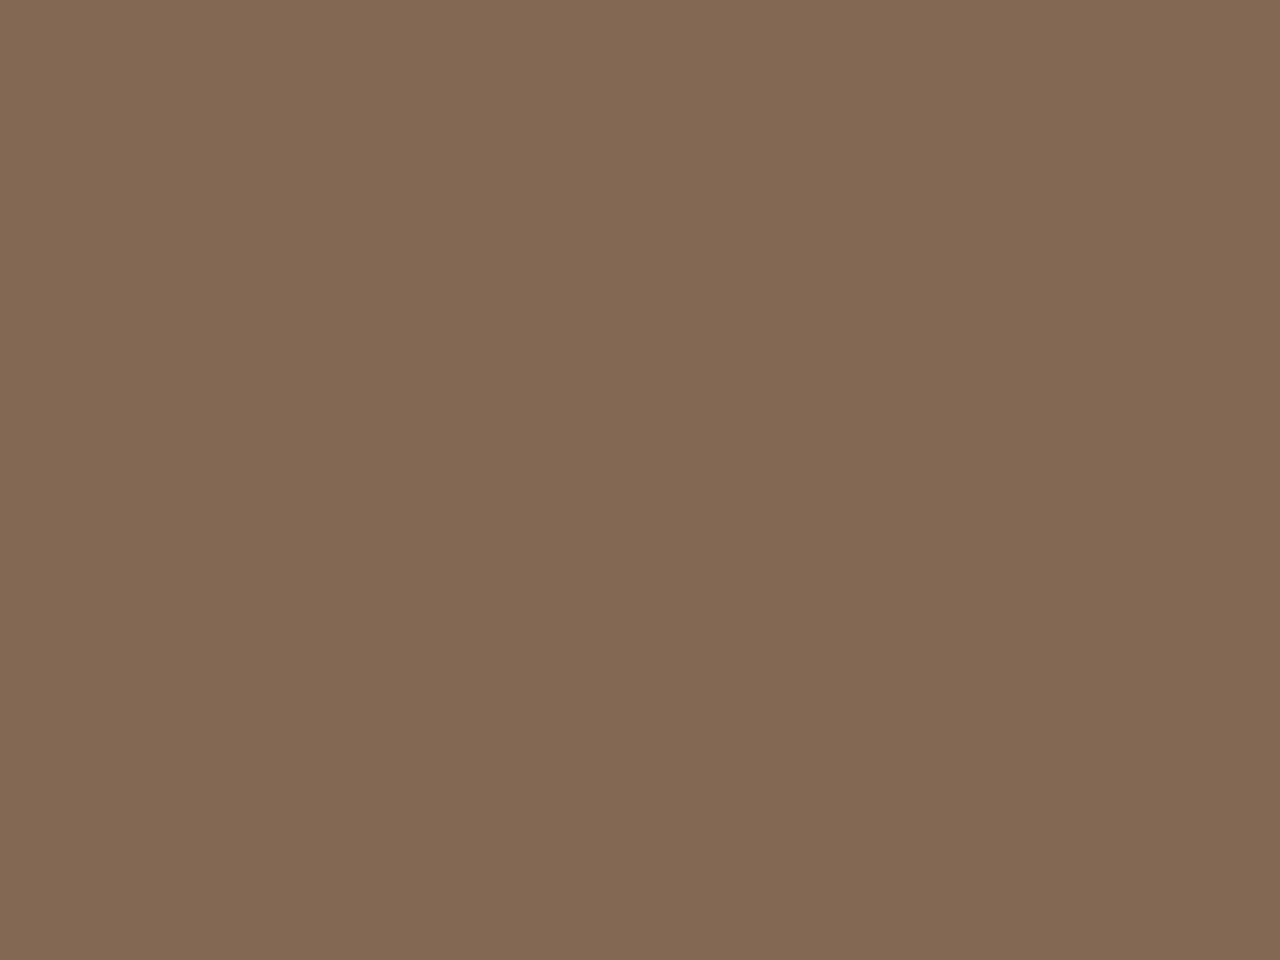 1280x960 Pastel Brown Solid Color Background